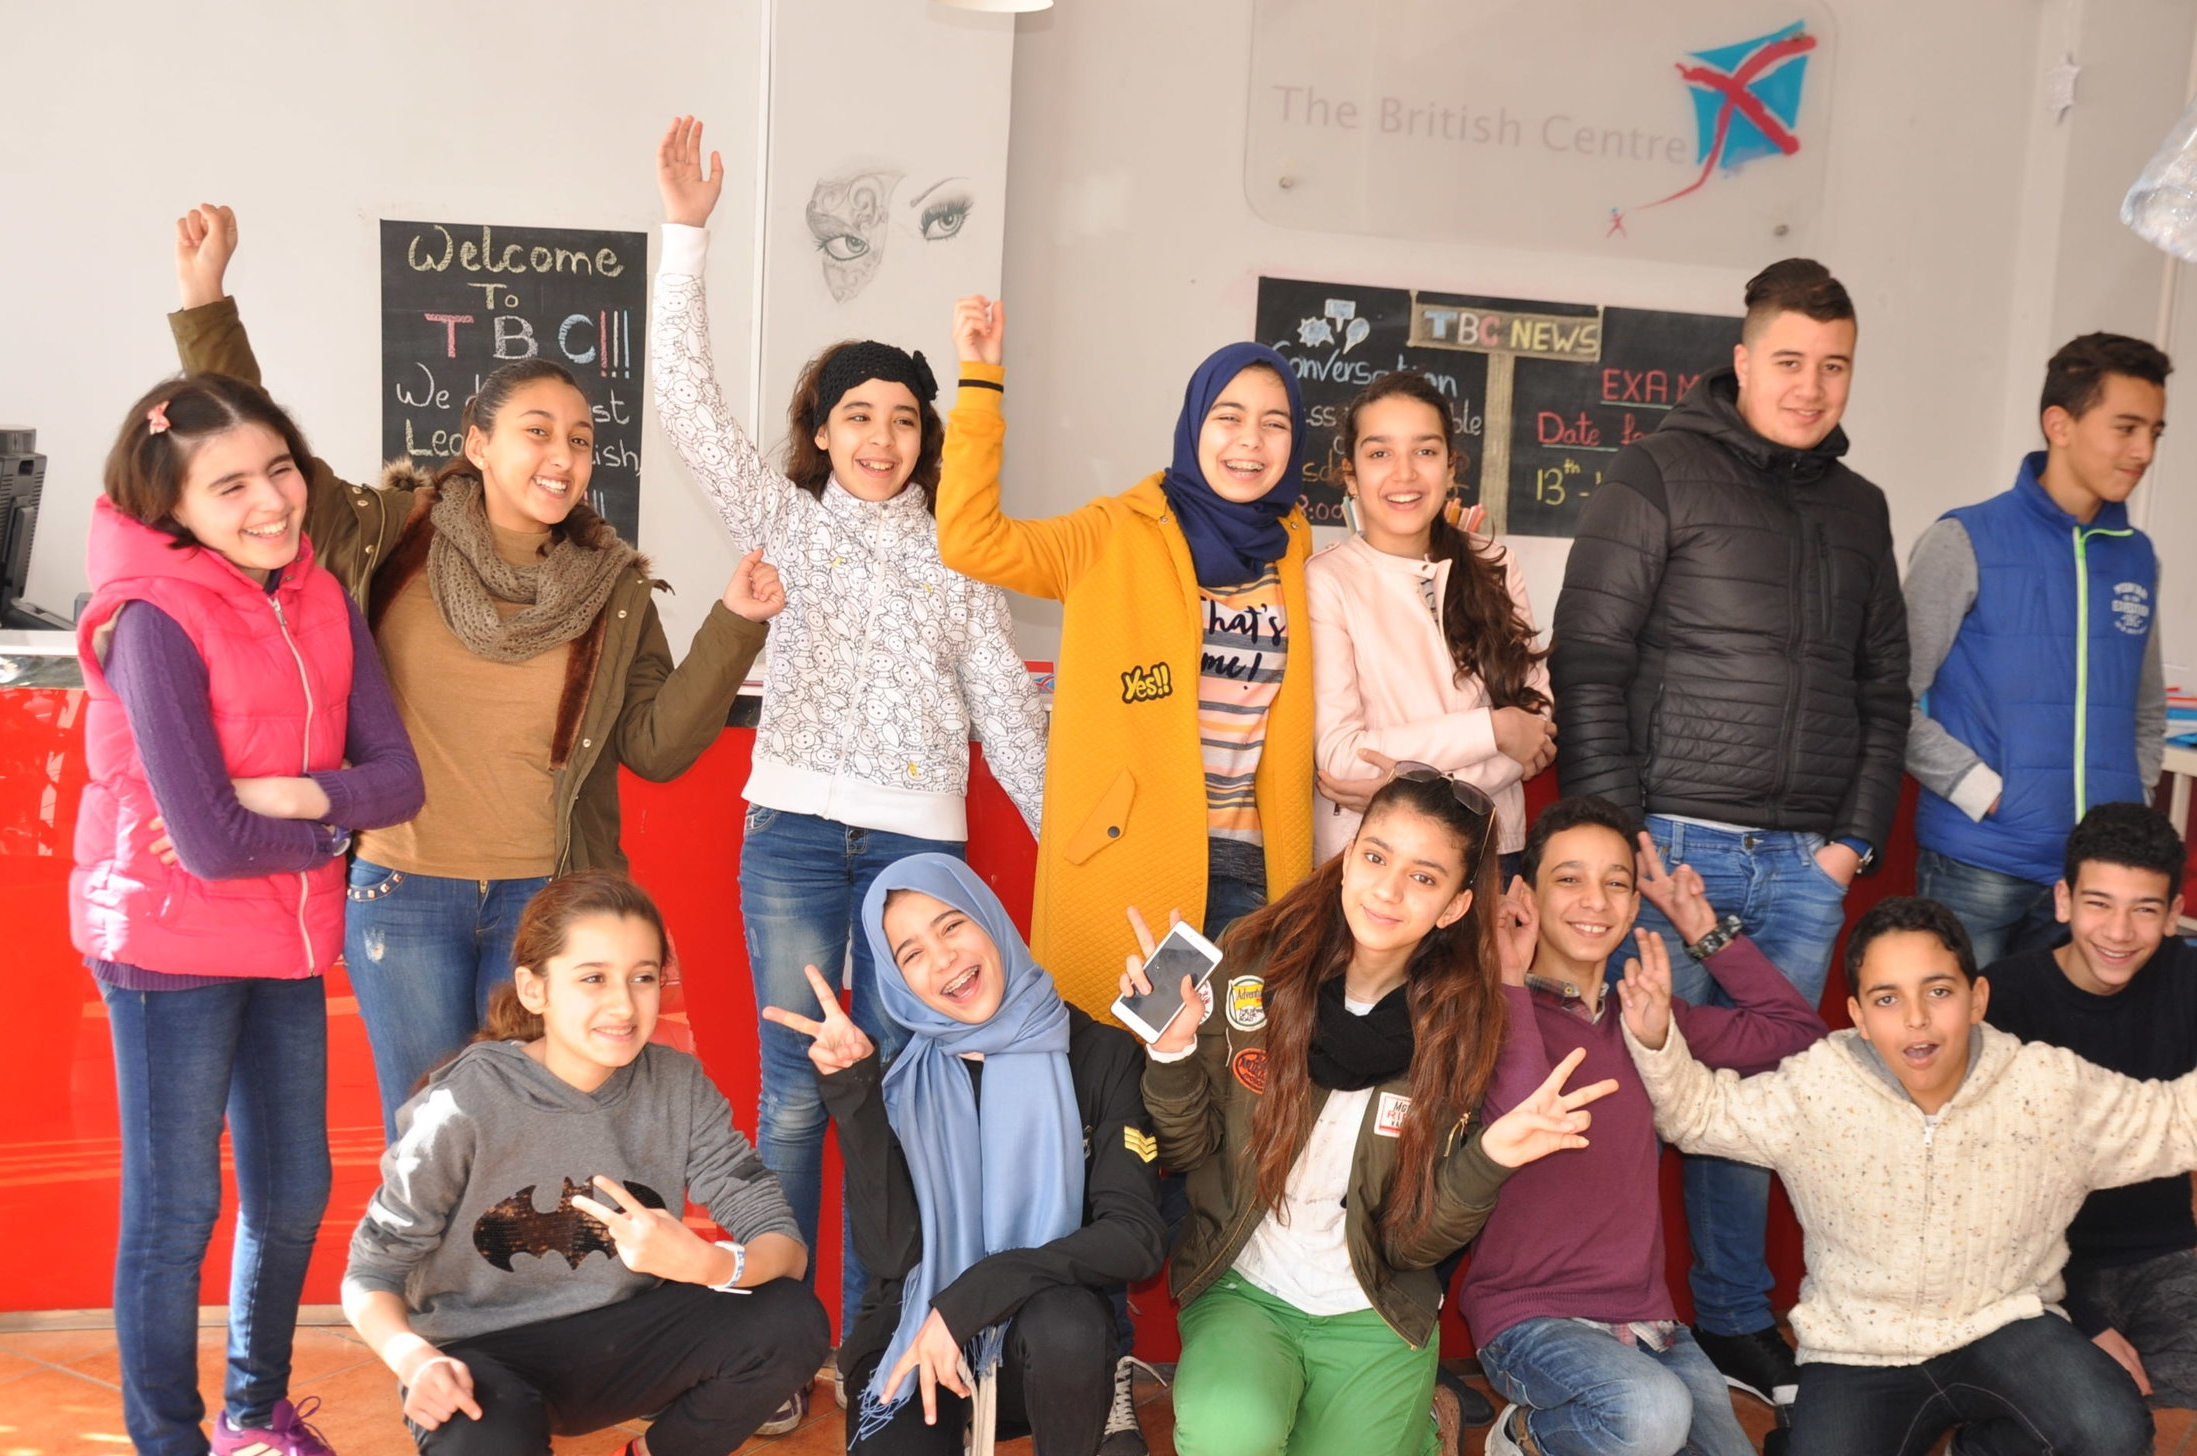 Teens - Teenagers at the Tetouan British Centre enjoy a stimulating and inventive programmes